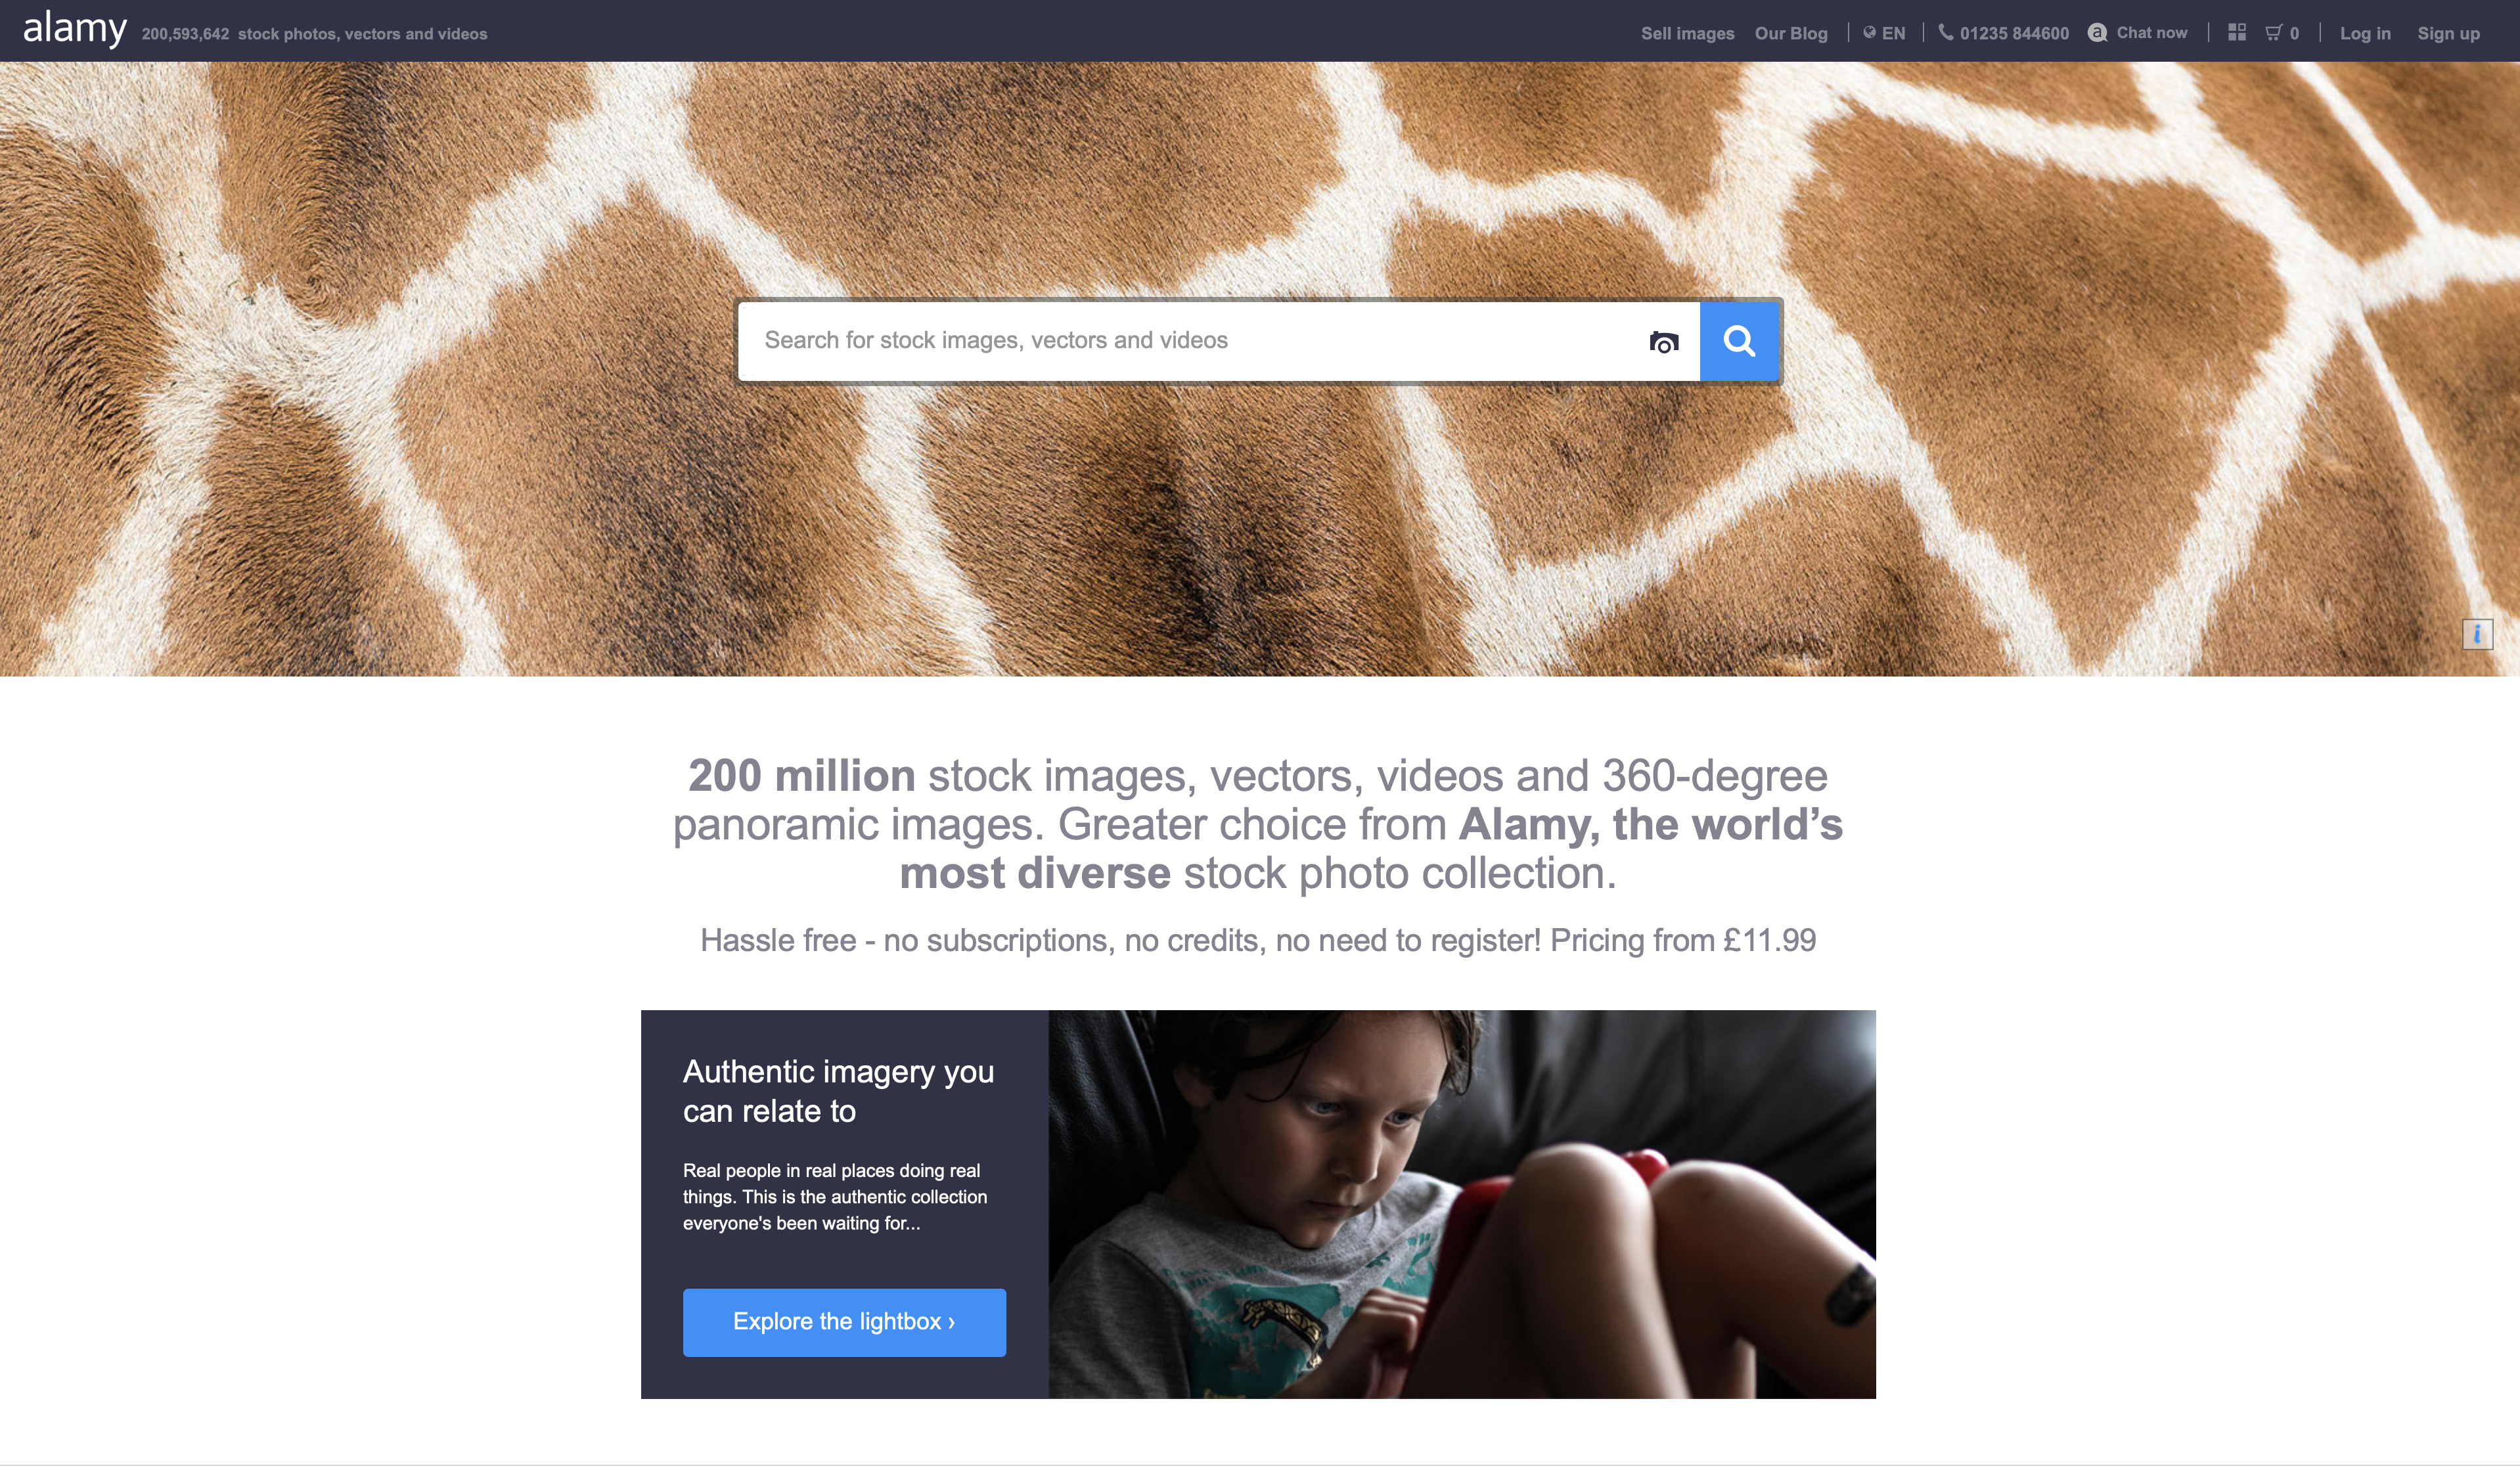 Alamy is a good alternative to sell photos online